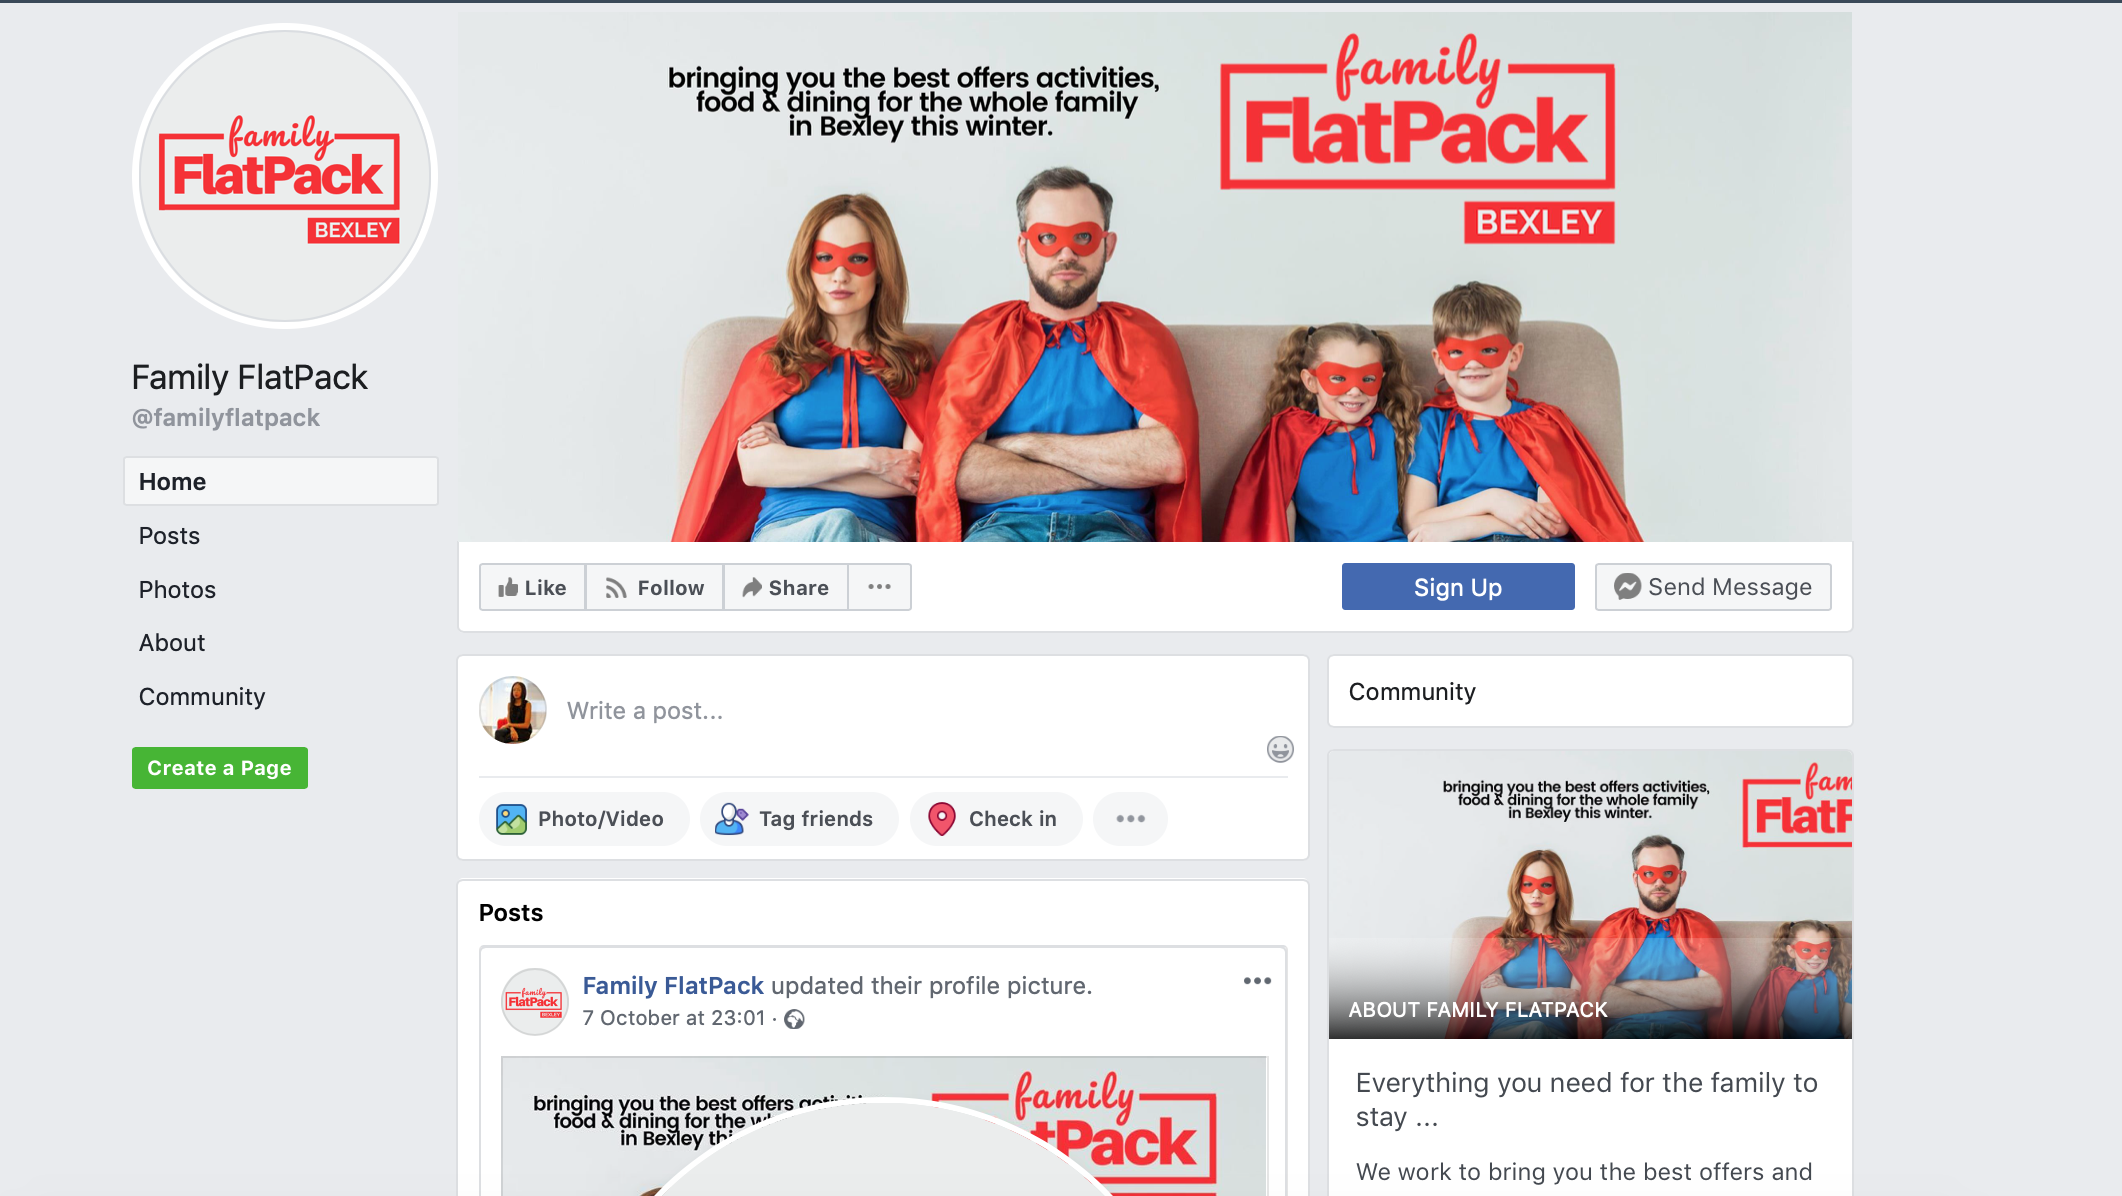 Facebook Page | Family FlatPack